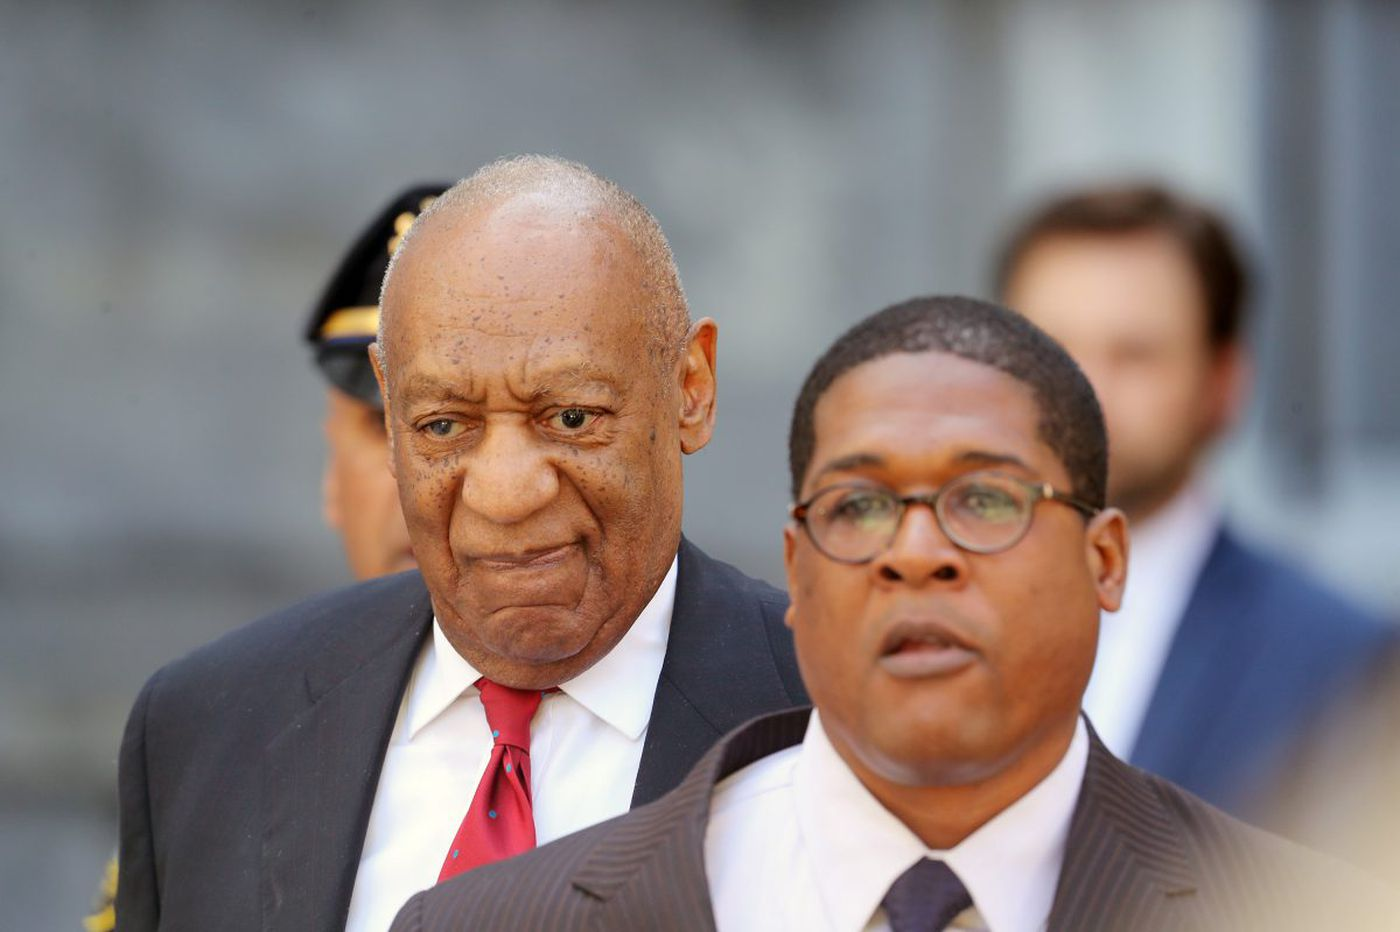 Bill Cosby found guilty in sexual assault trial, Rep. Brady introduces bill to prevent family's deportation | Morning Newsletter